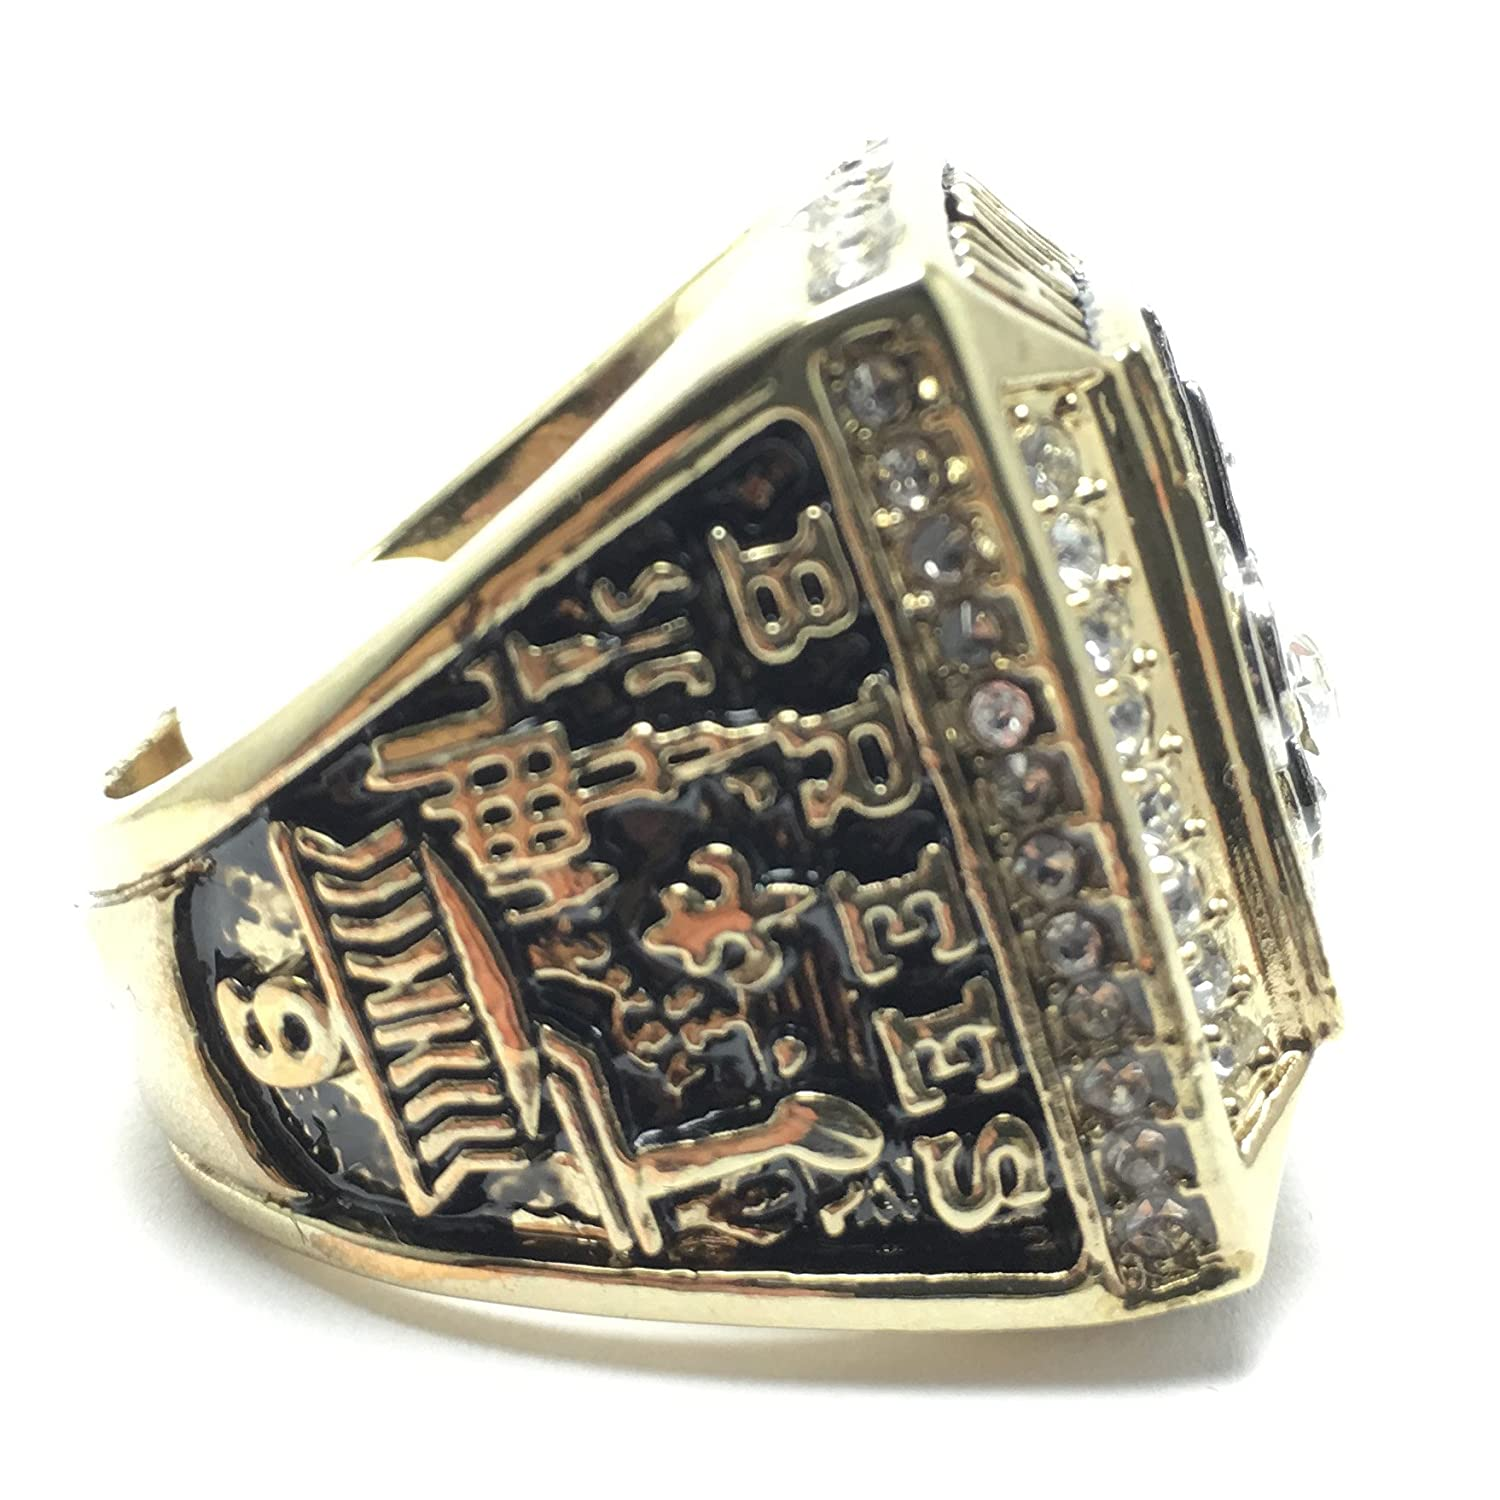 xliv orleans championship saints nfl new rings world ring bowl products super